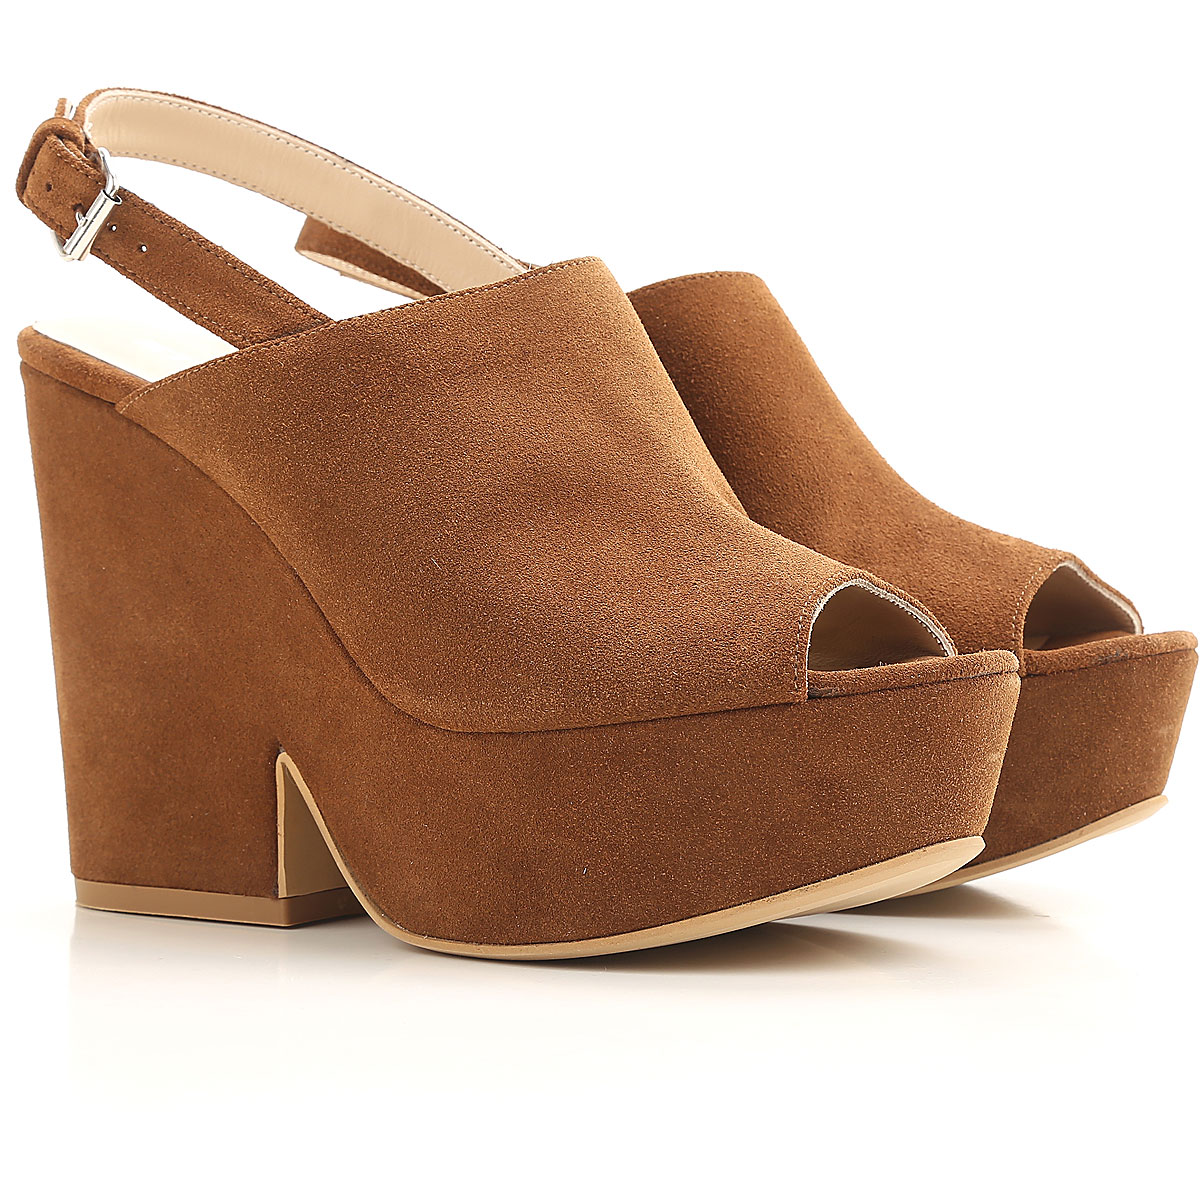 Strategia Wedges for Women in Outlet Tobacco USA - GOOFASH